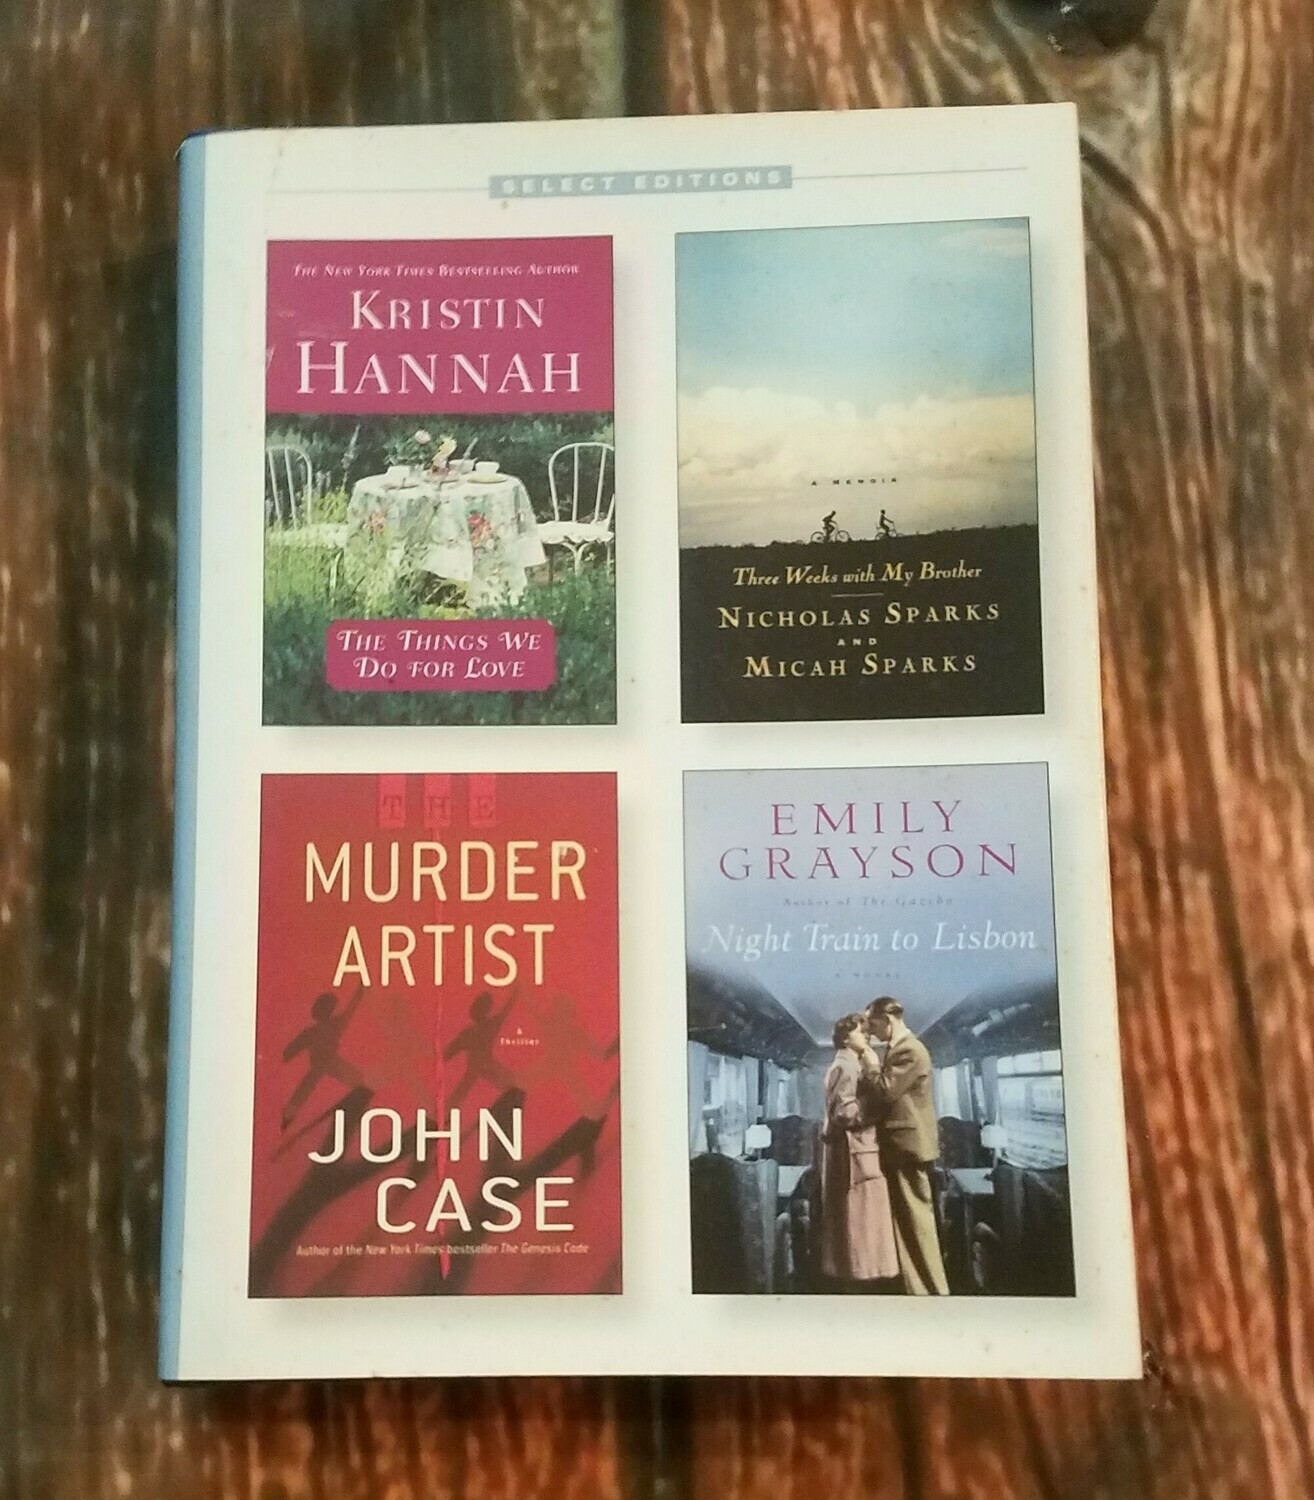 The Things We Do For Love, Three Weeks with My Brothers, Murder Artist, and Night Train to Lisbon by Reader's Digest